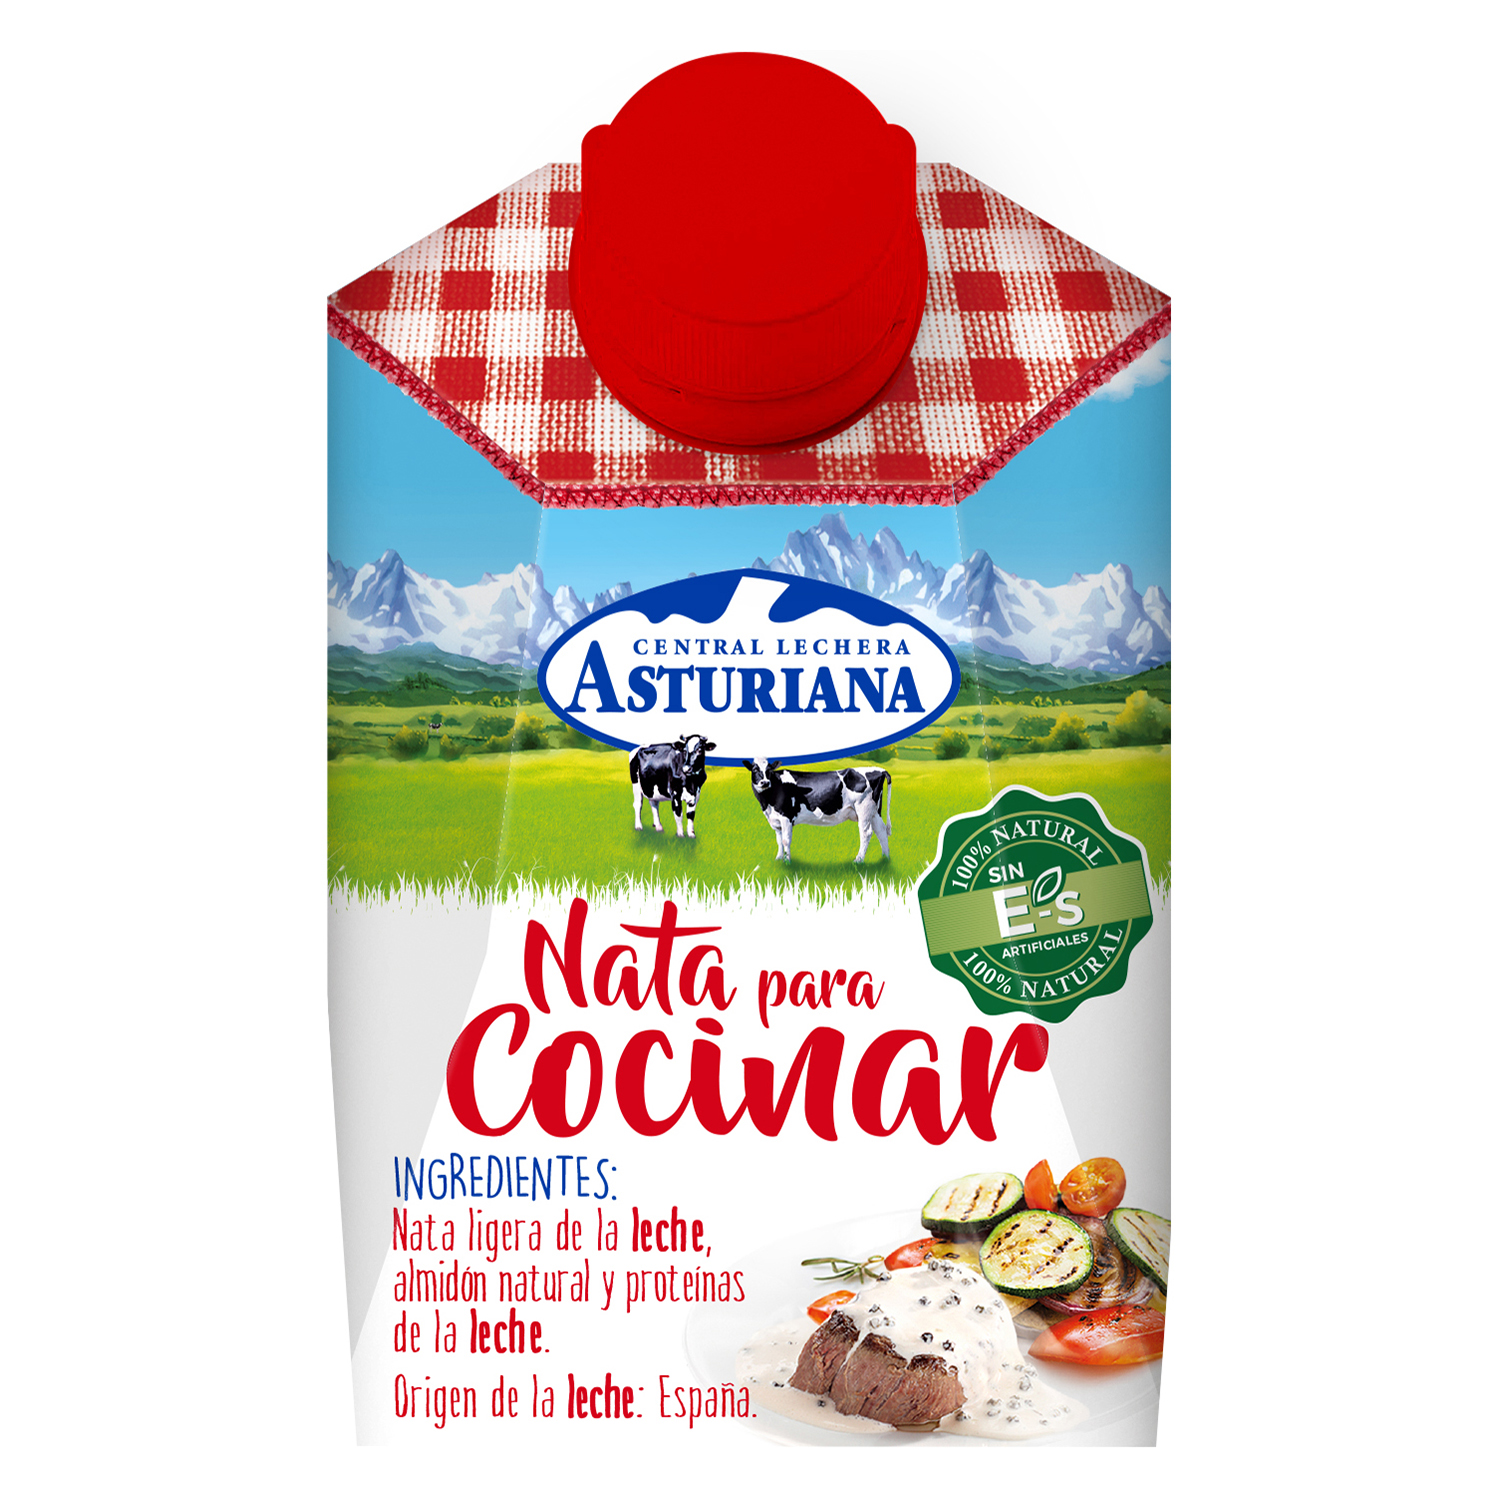 Nata para cocinar Central Lechera Asturiana 200 ml.